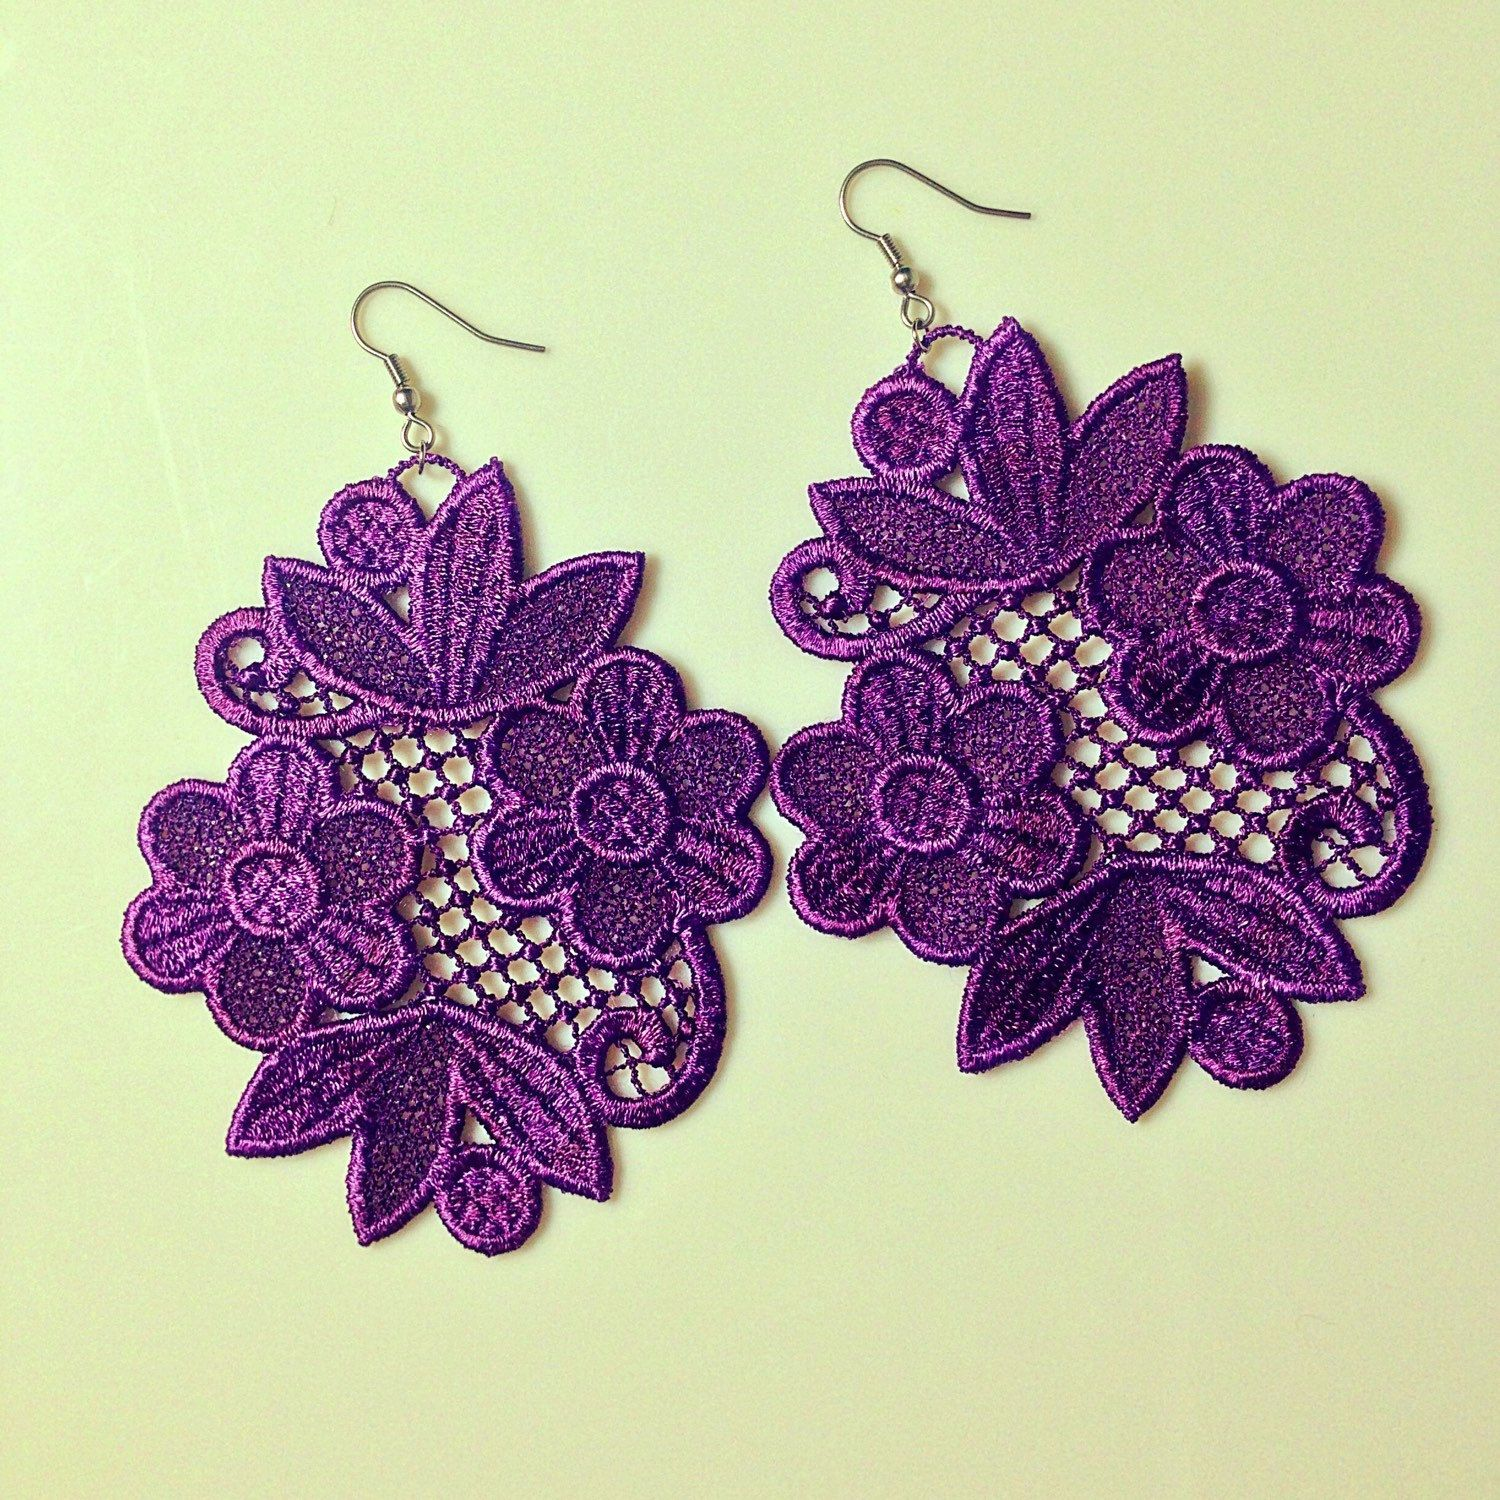 Free Standing Lace Machine Embroidery Design Earrings Jewelry Embroidery Pattern | Machine ...